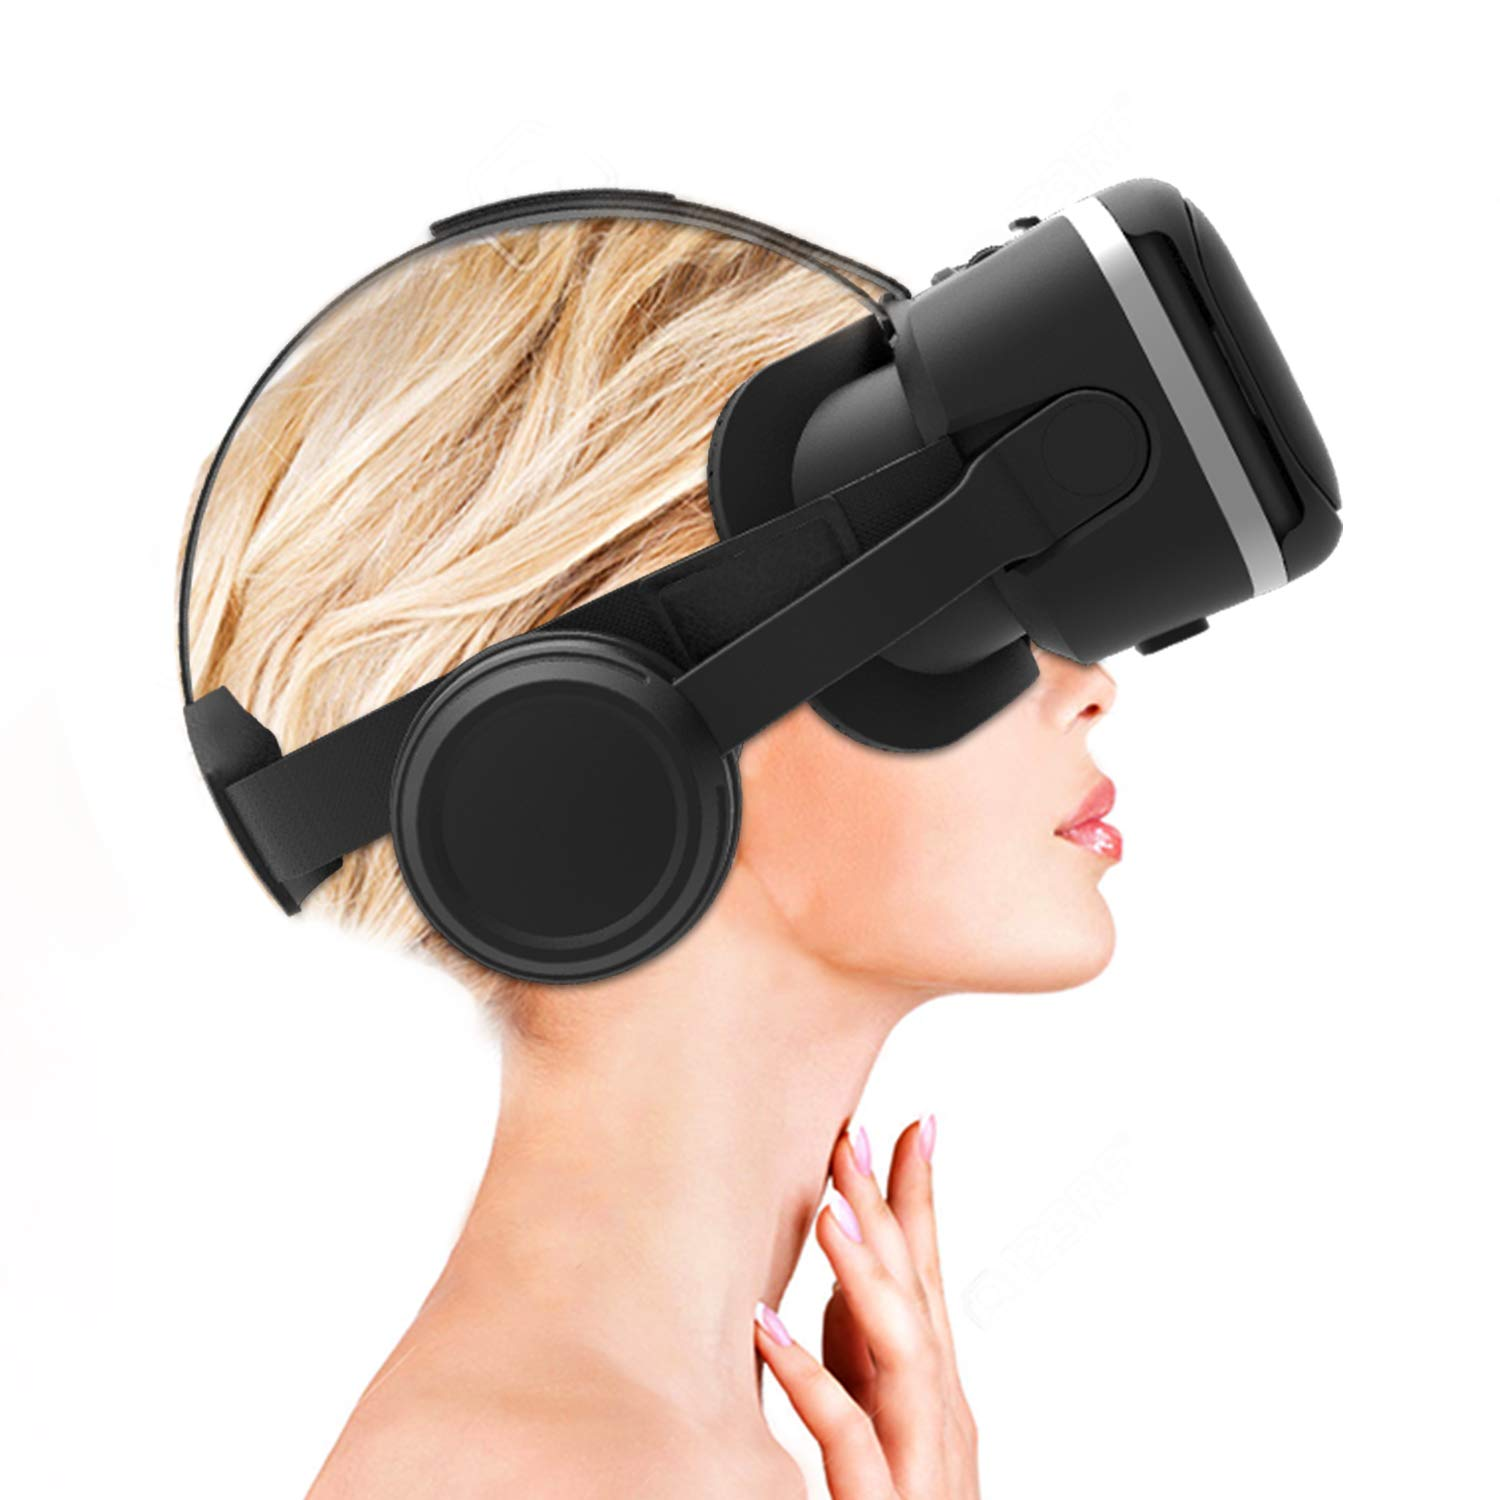 Amazon-Great-Indian-Festival-2019-5-Best-VR-Headset-Available-at-Huge-Discount-4